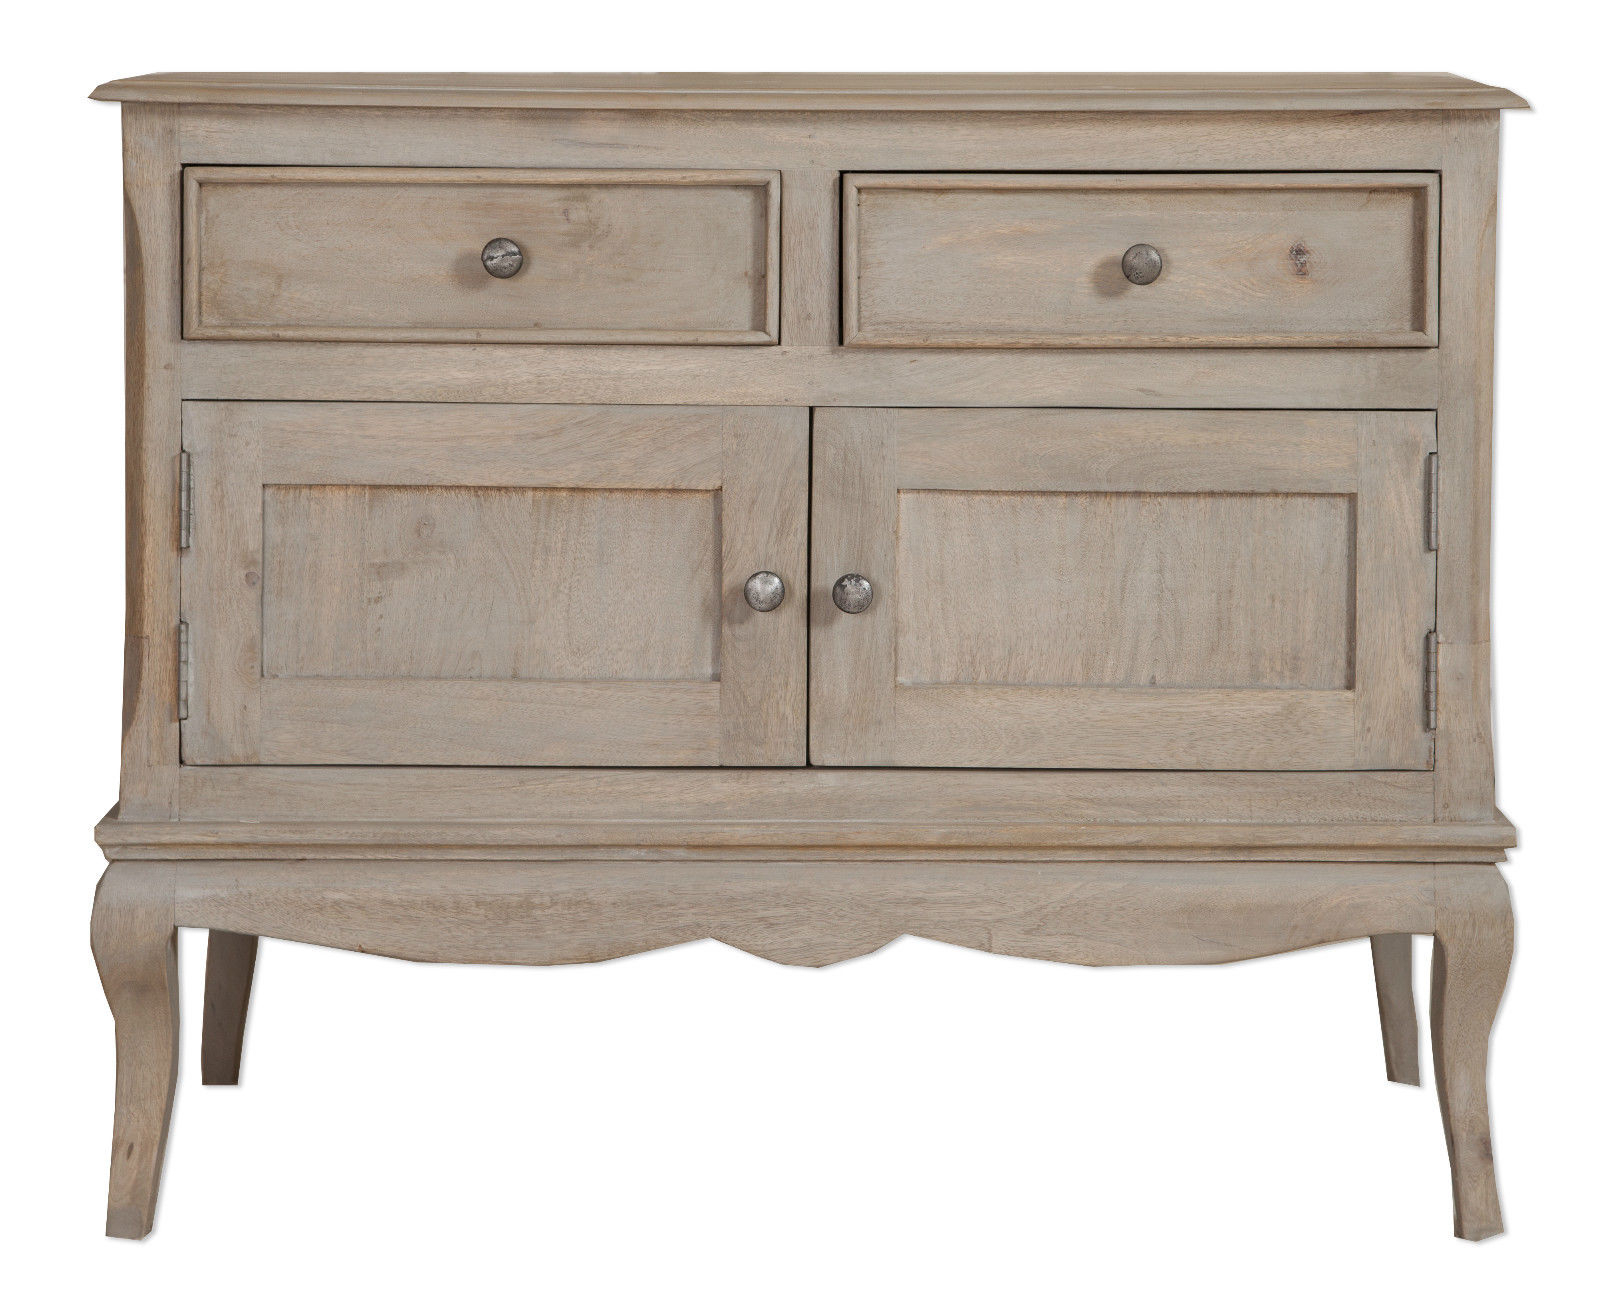 Mango Wood Grey 4 Drawer 4 Door Sideboards Inside Well Known Loire French Grey Solid Mango Wood 2 Door / 2 Drawer Sideboard (View 8 of 20)